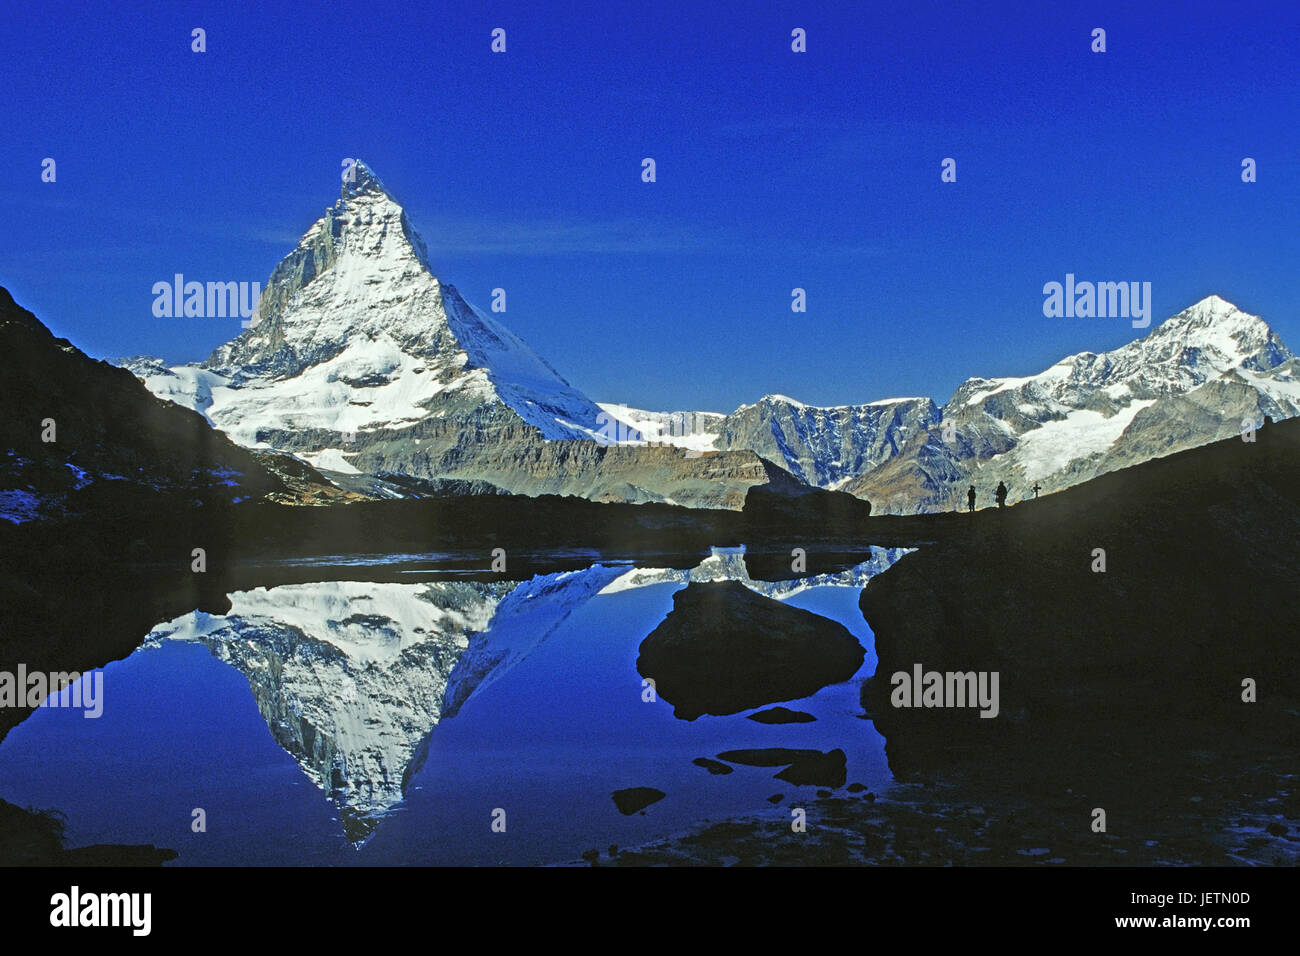 Matterhorn is reflected in a mountain lake, Matterhorn spiegelt sich in einem Bergsee - Stock Image